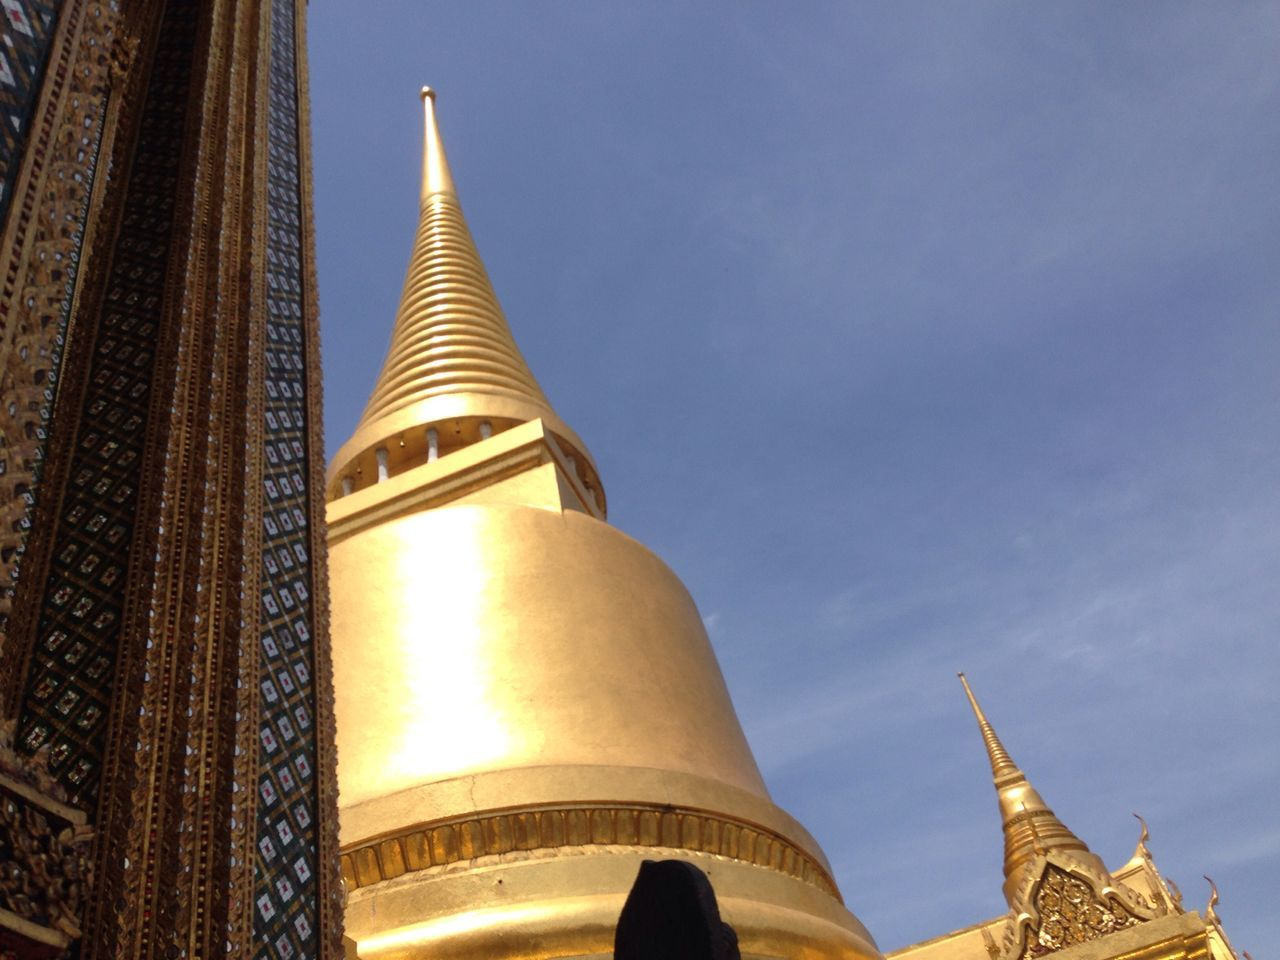 Architectural Feature Architecture Blue Built Structure Capital Cities  Cloud - Sky Day Dome Famous Place High Section Illuminated International Landmark Low Angle View No People Outdoors Place Of Worship Religion Sky Spirituality Tall - High Temple - Building Thailand The Architect - 2016 EyeEm Awards Tourism Travel Destinations